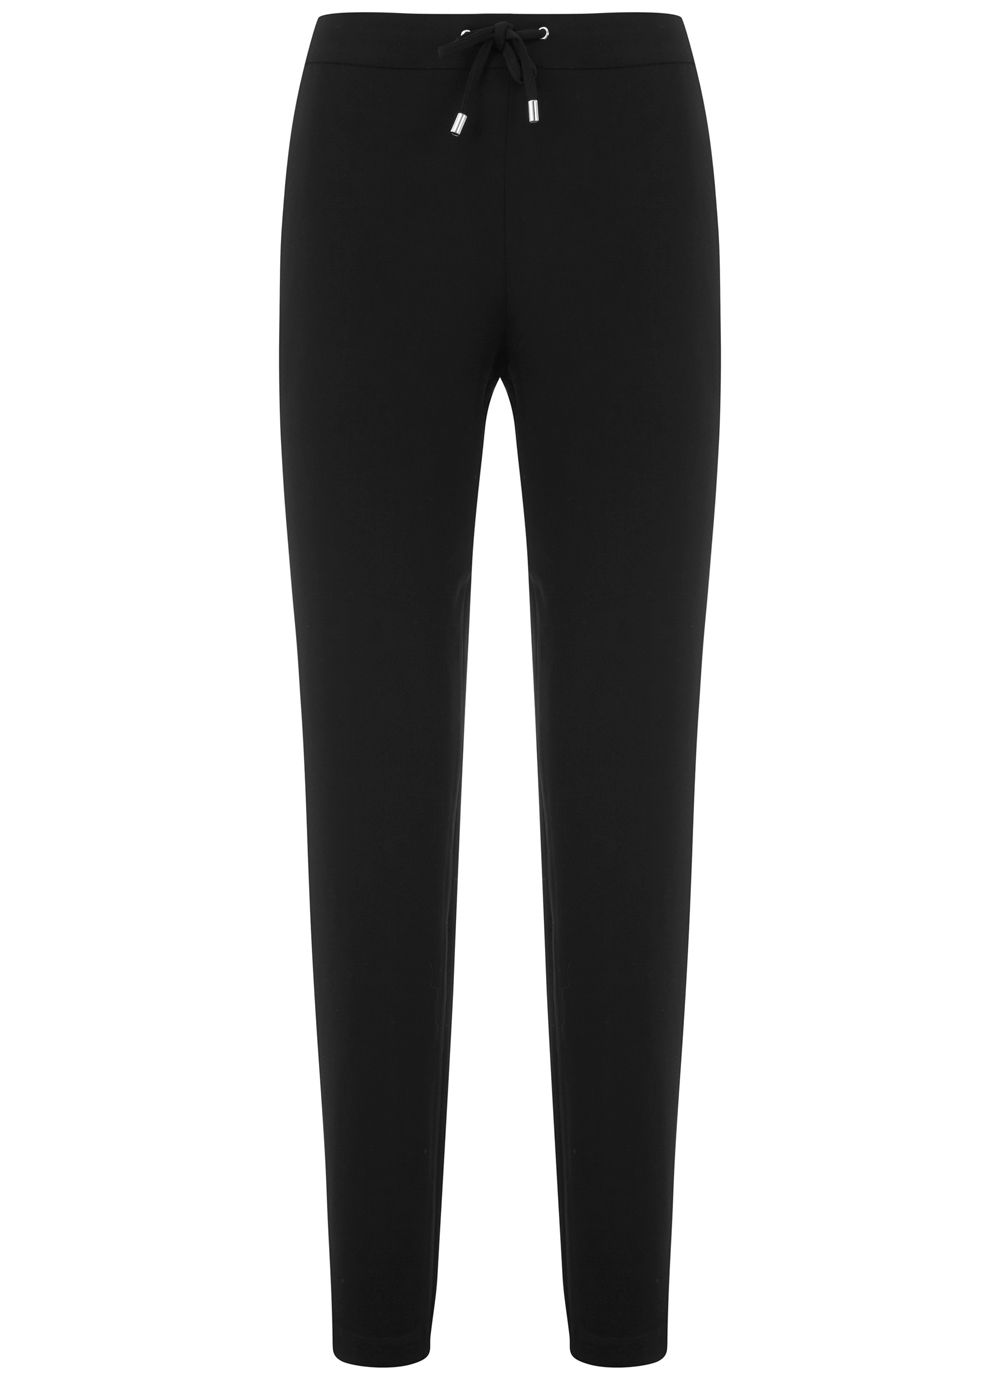 Mint Velvet Black Side Stripe Sports Pant, Black